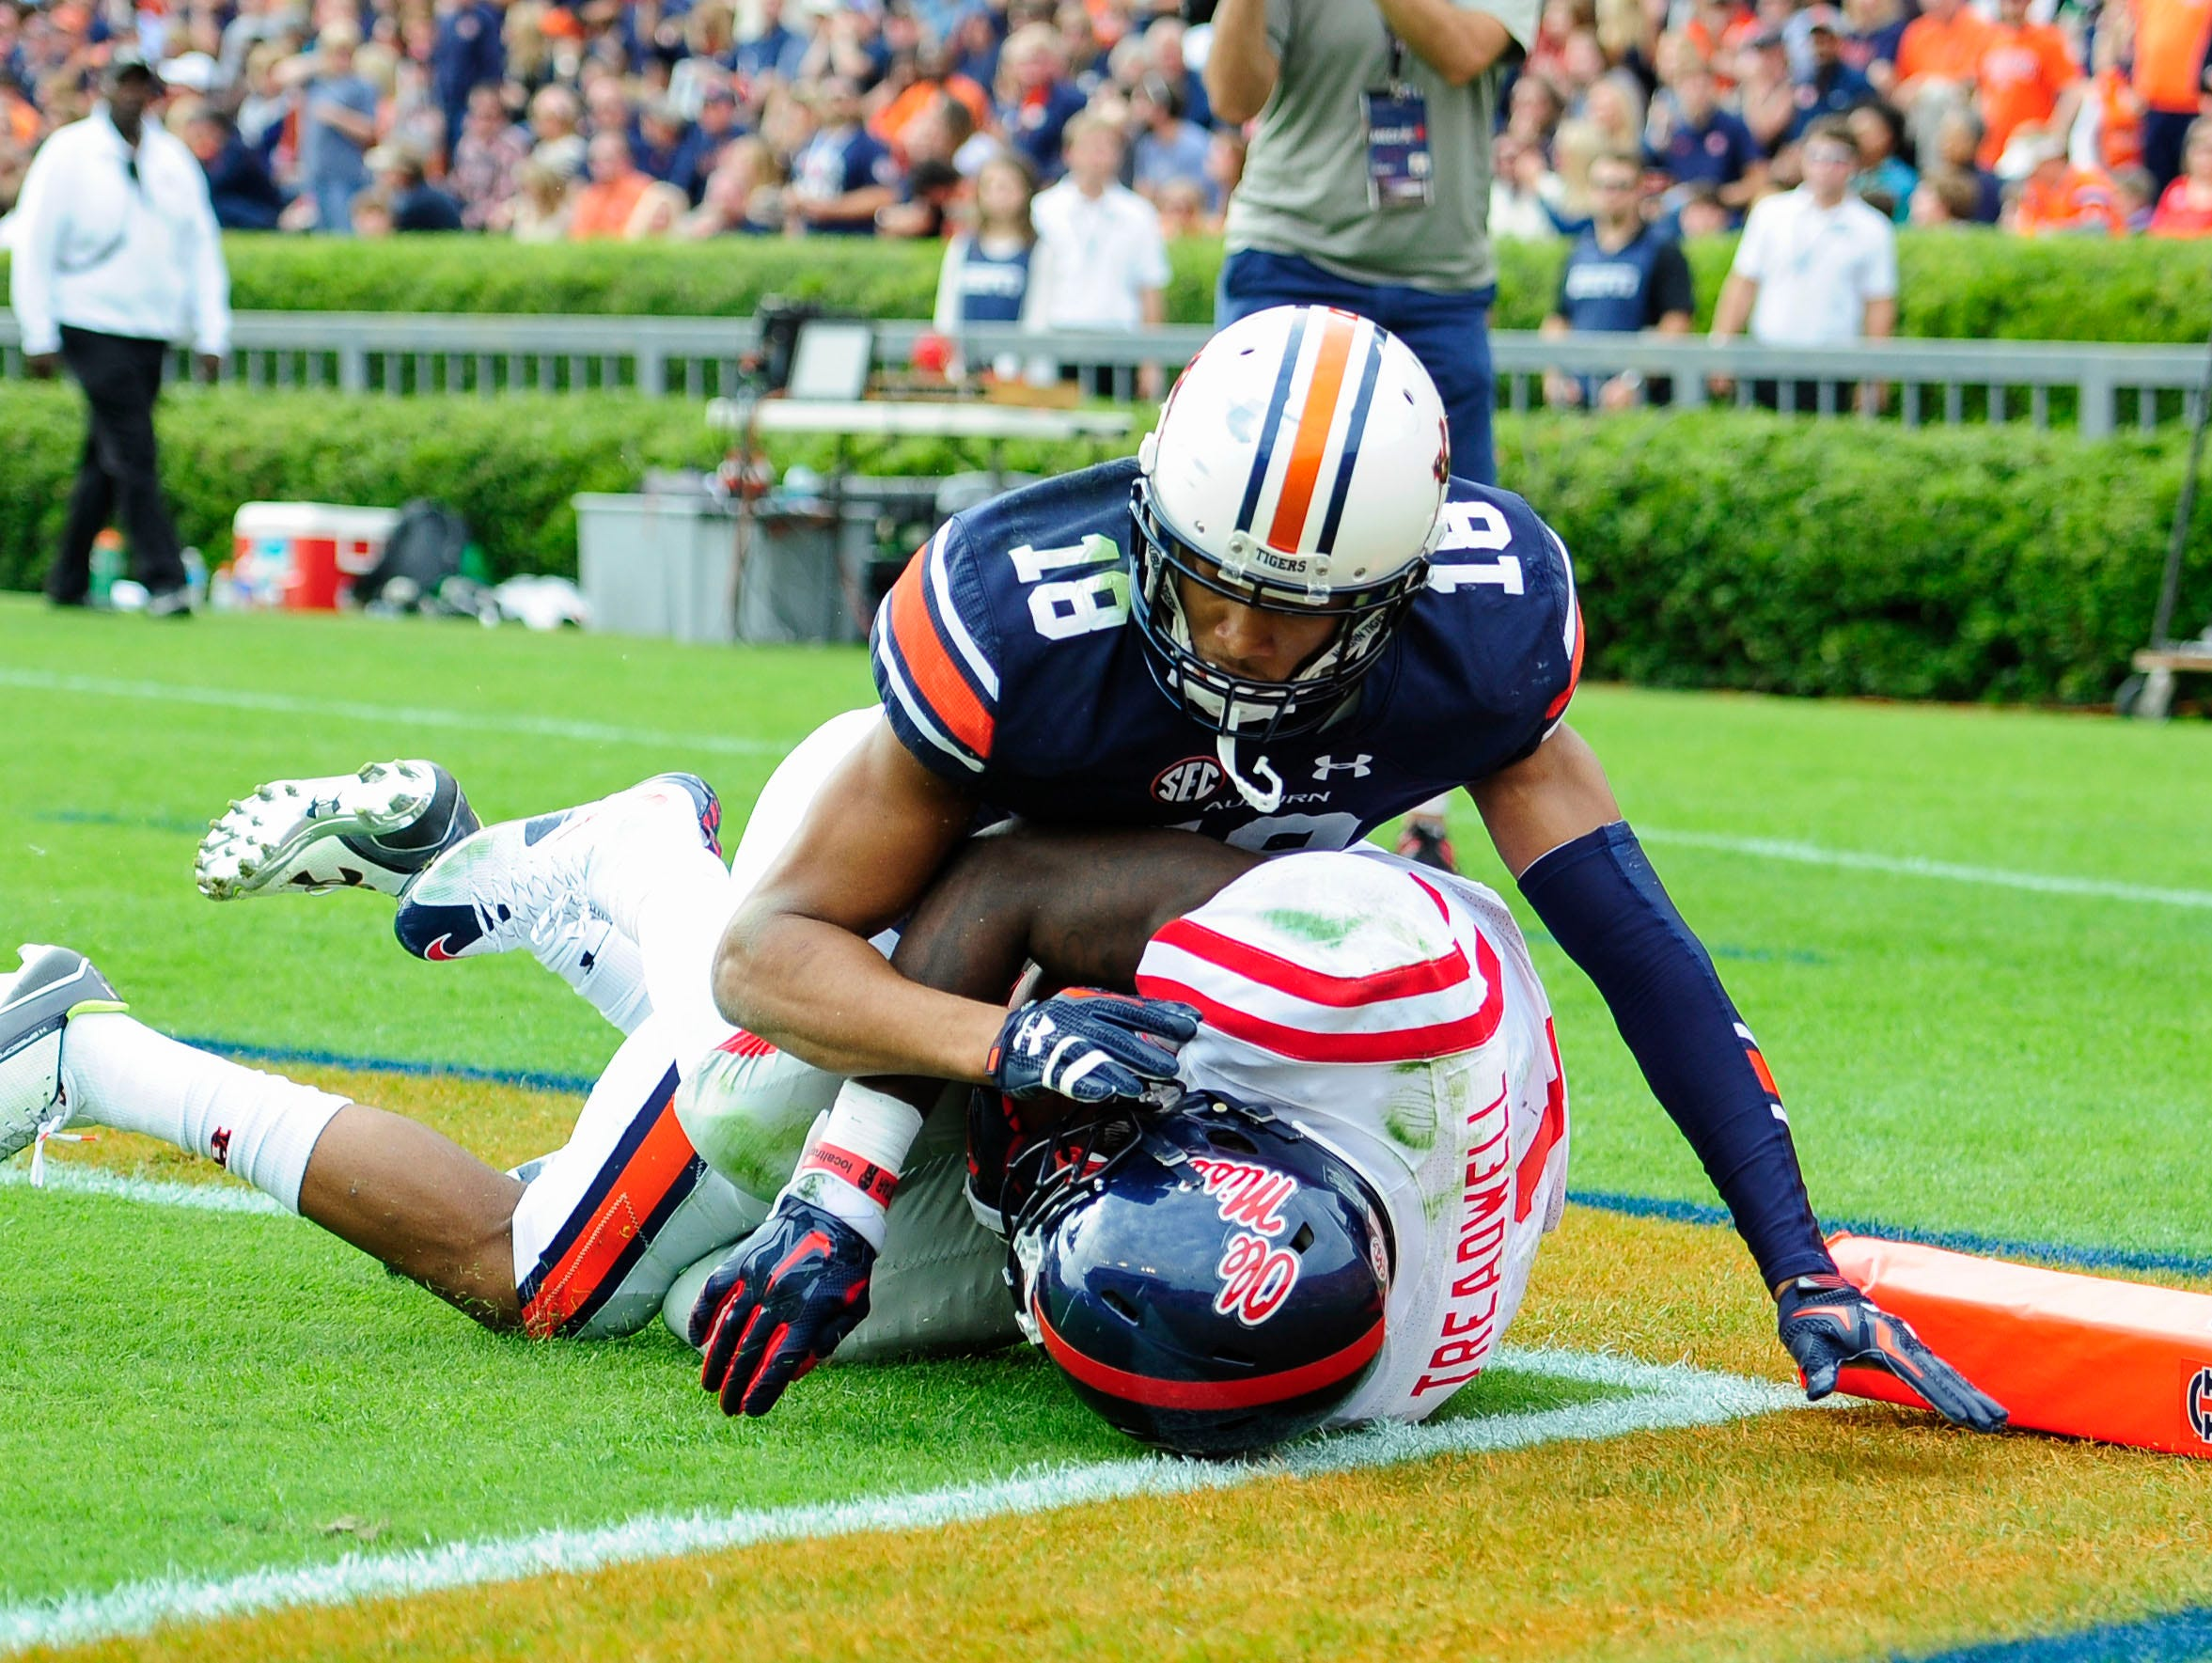 Oct 31, 2015; Auburn, AL, USA; Mississippi Rebels wide receiver Laquon Treadwell (1) scores a touchdown as Auburn Tigers defensive back Carlton Davis (18) defends during the fourth quarter at Jordan Hare Stadium. Mississippi won 27-19. Mandatory Credit: Shanna Lockwood-USA TODAY Sports